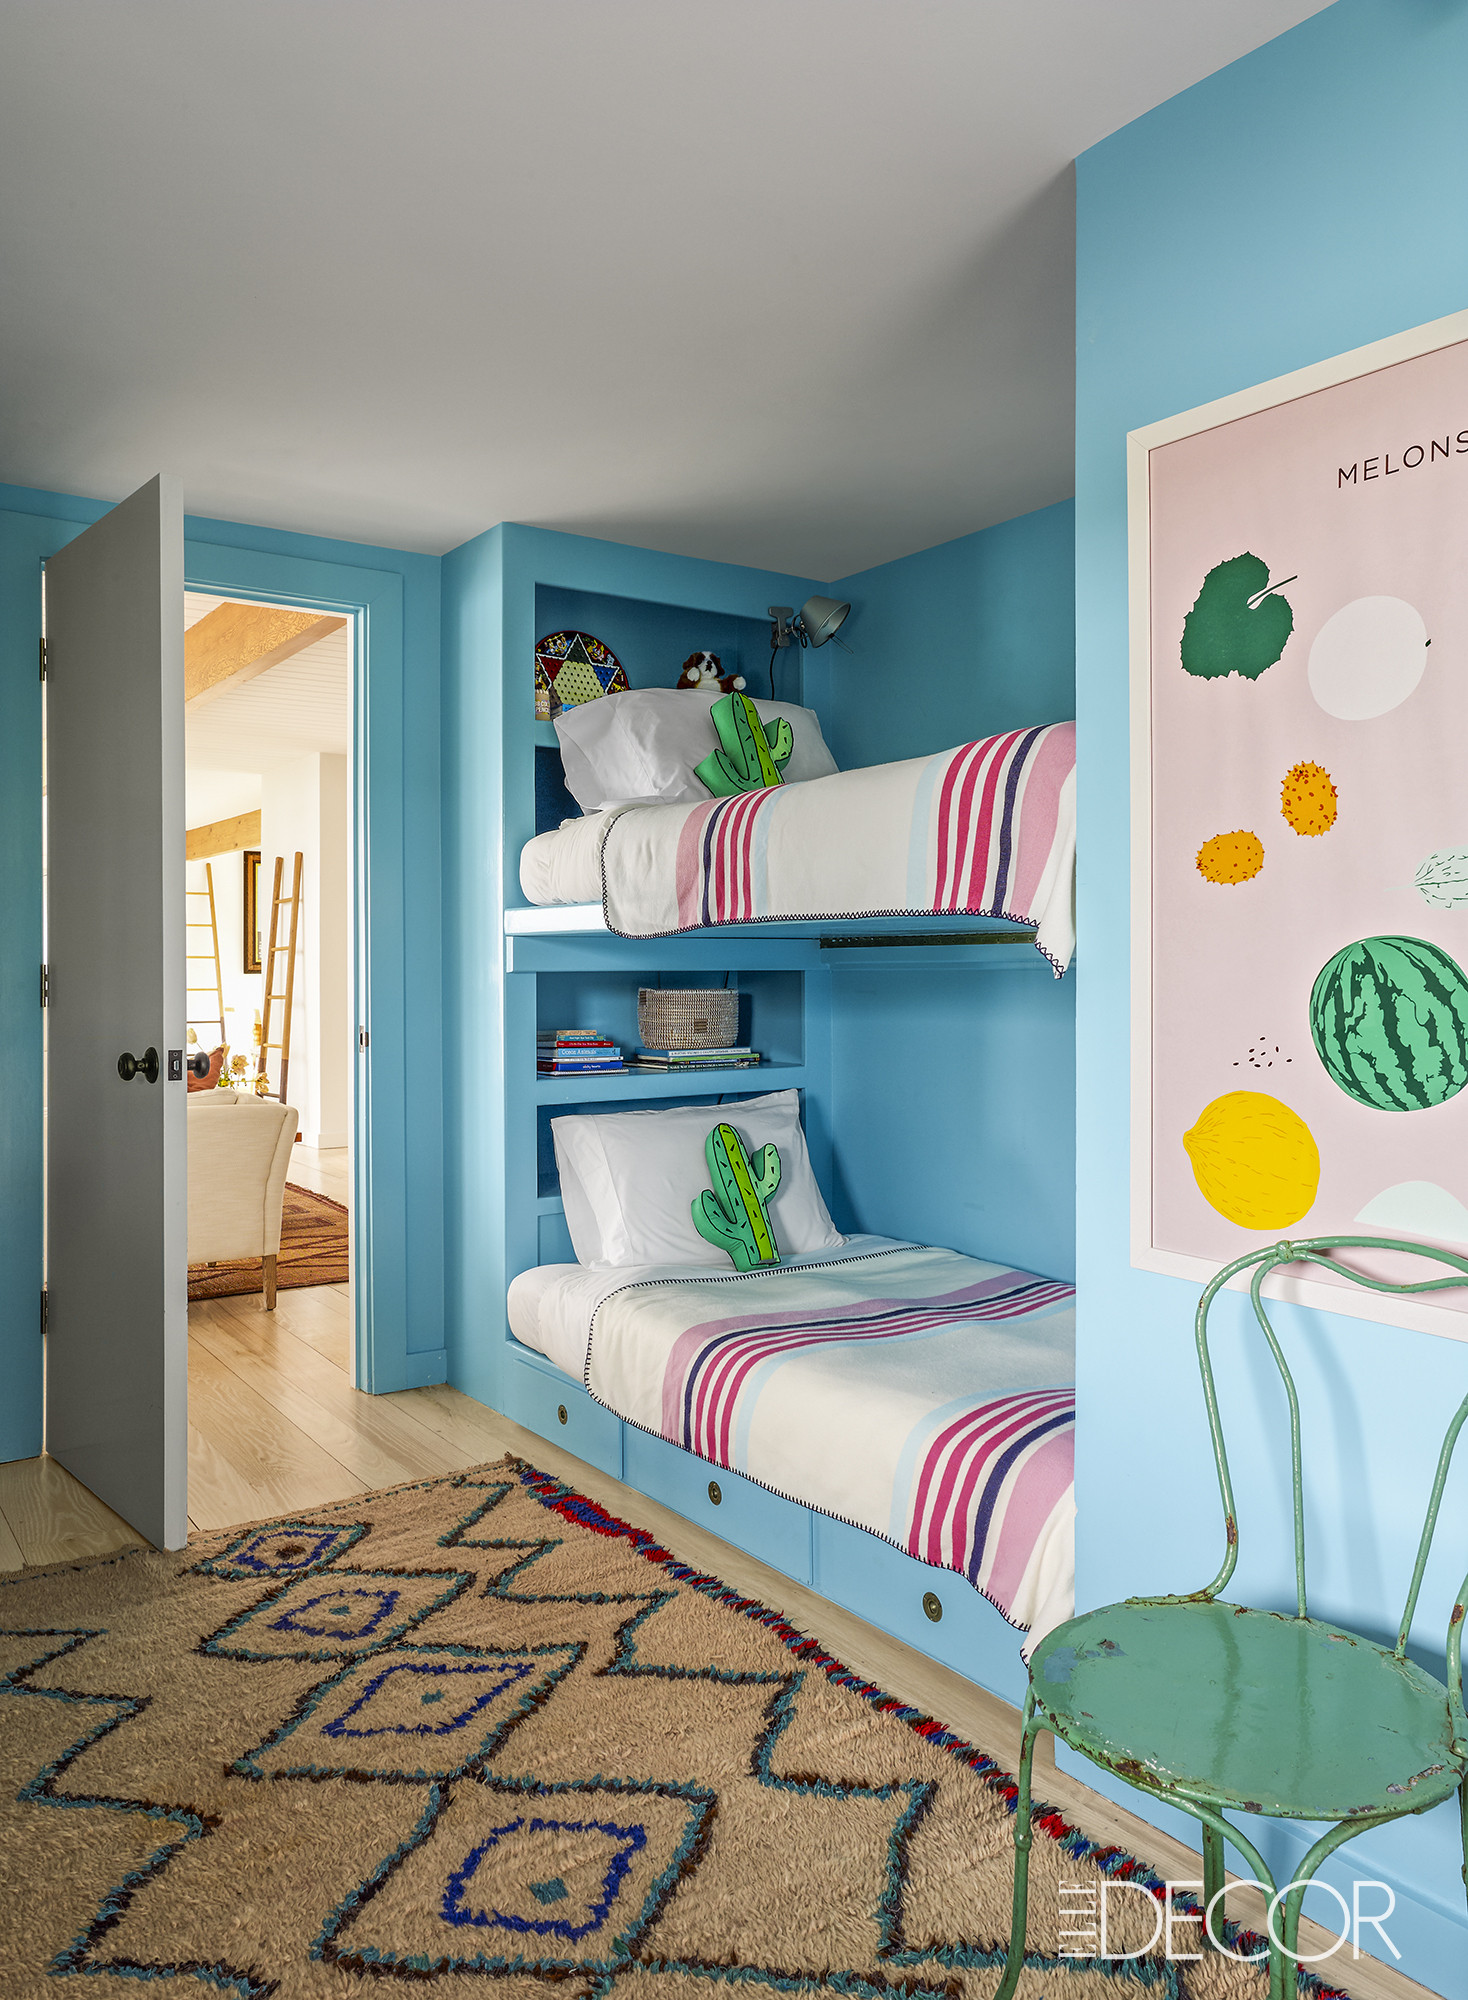 Best ideas about Kids Room Decor . Save or Pin Decorate your kids room beautifully – goodworksfurniture Now.